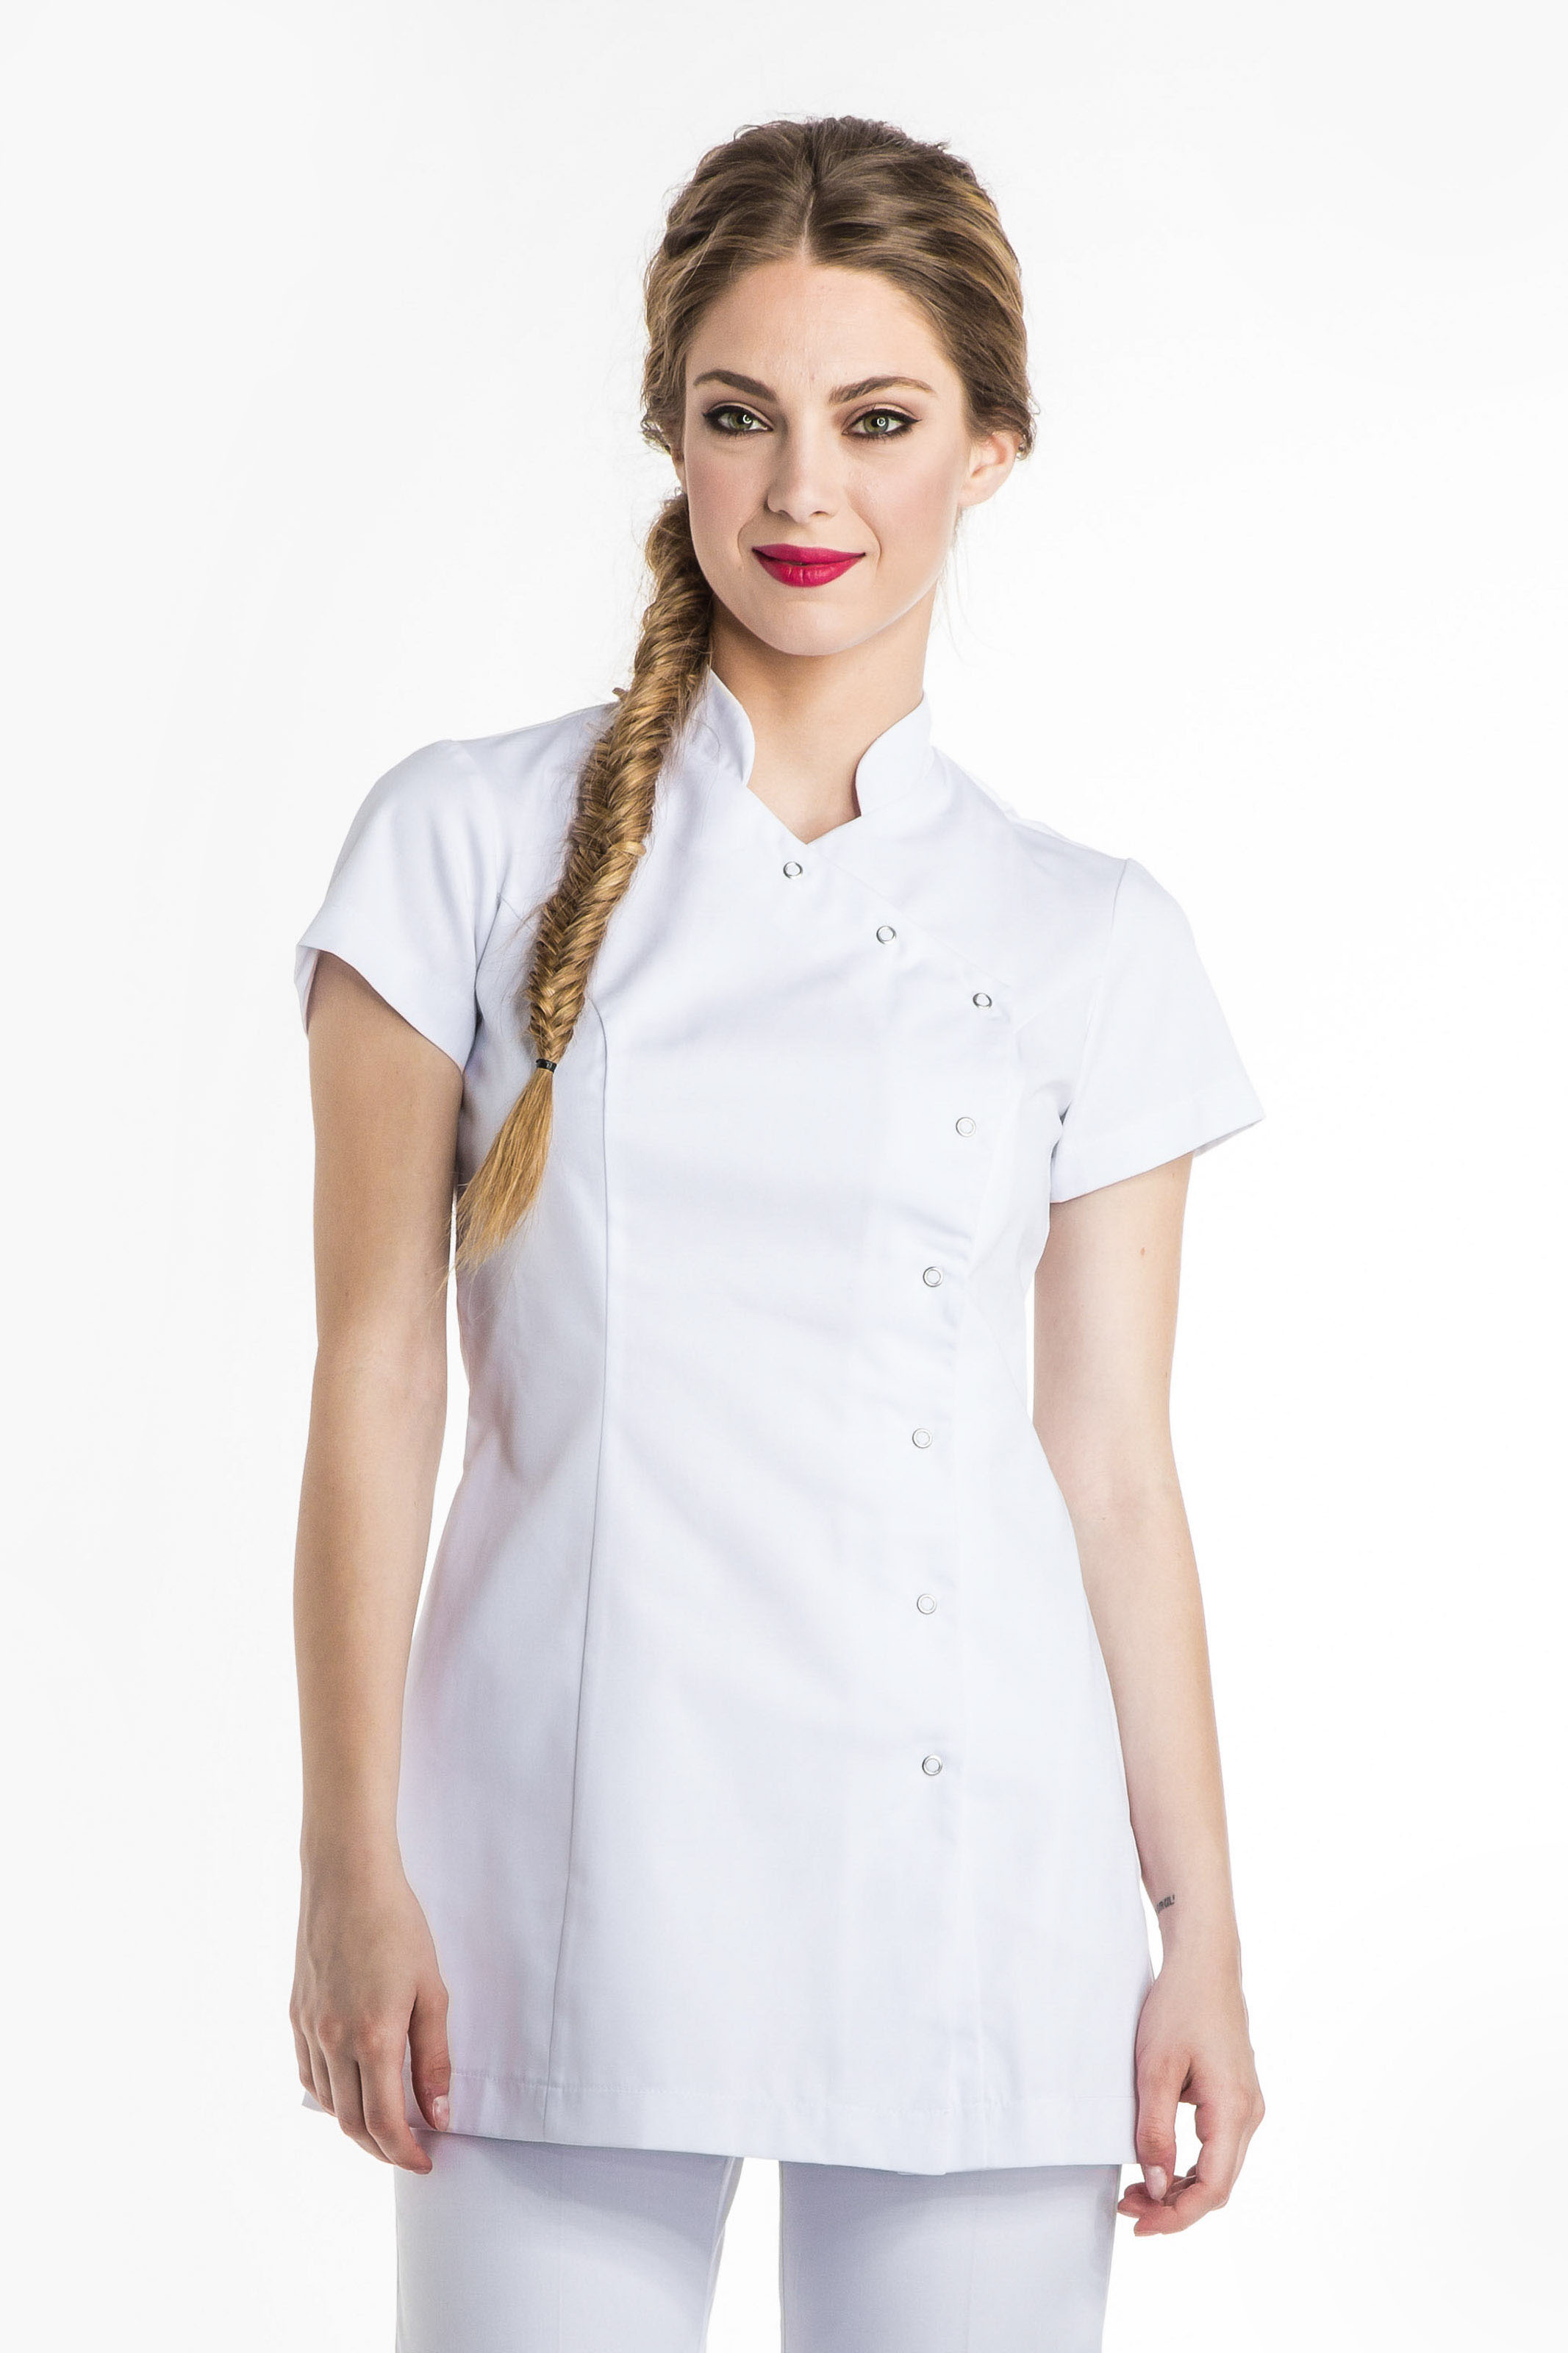 Aris Uniforms-FTU02-Women's Basic Asymmetrical Tunic